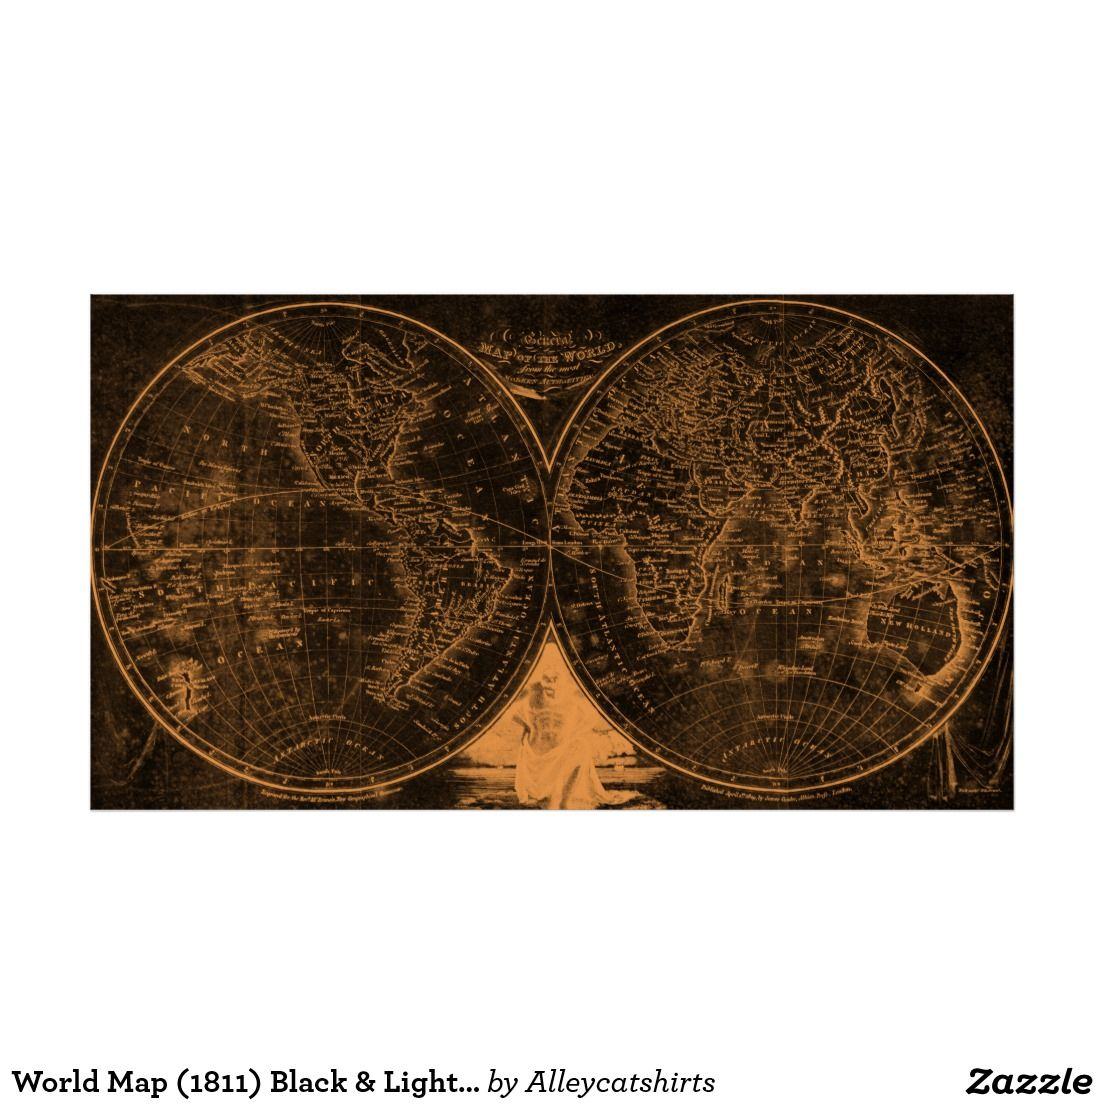 World map 1811 black light brown poster colorful world maps world map black light brown poster created by alleycatshirts order as shown or change the print size or paper type add custom framing gumiabroncs Image collections